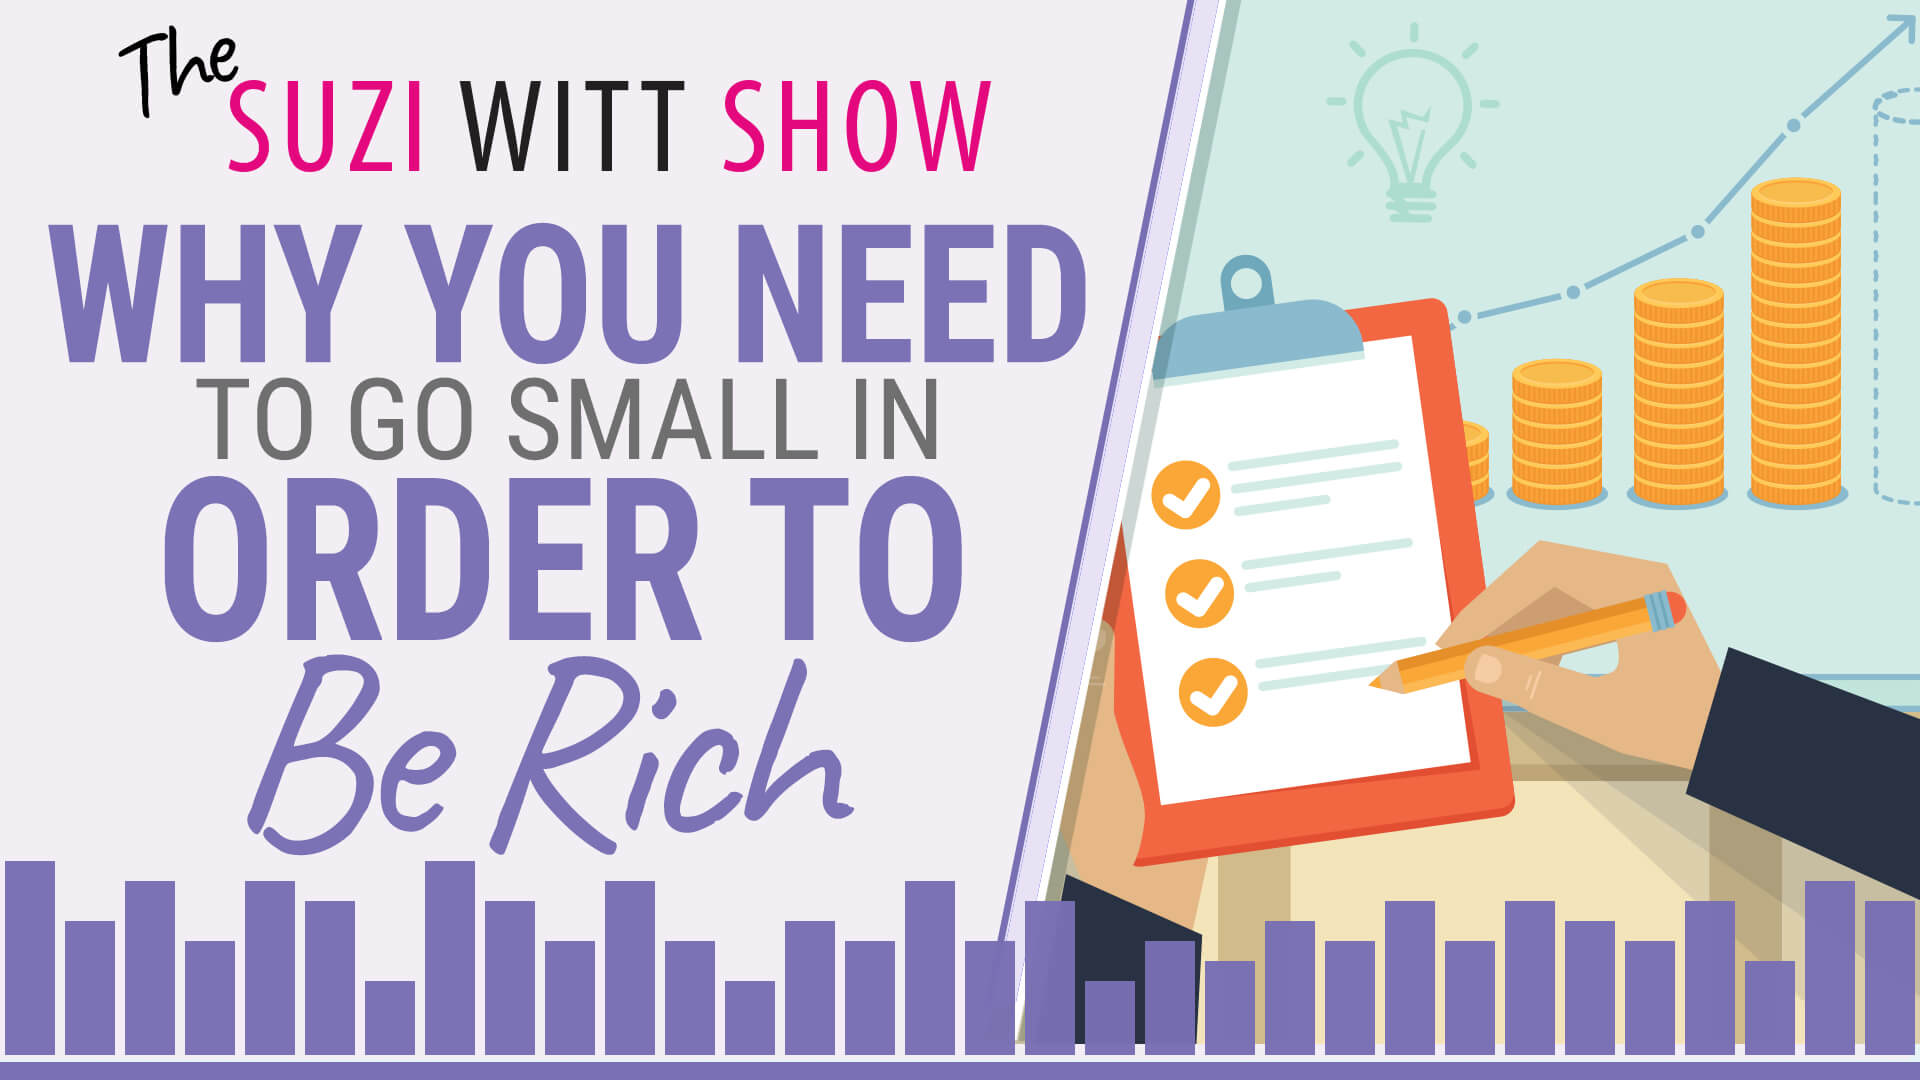 Why You Need to Go Small in Order to be Rich